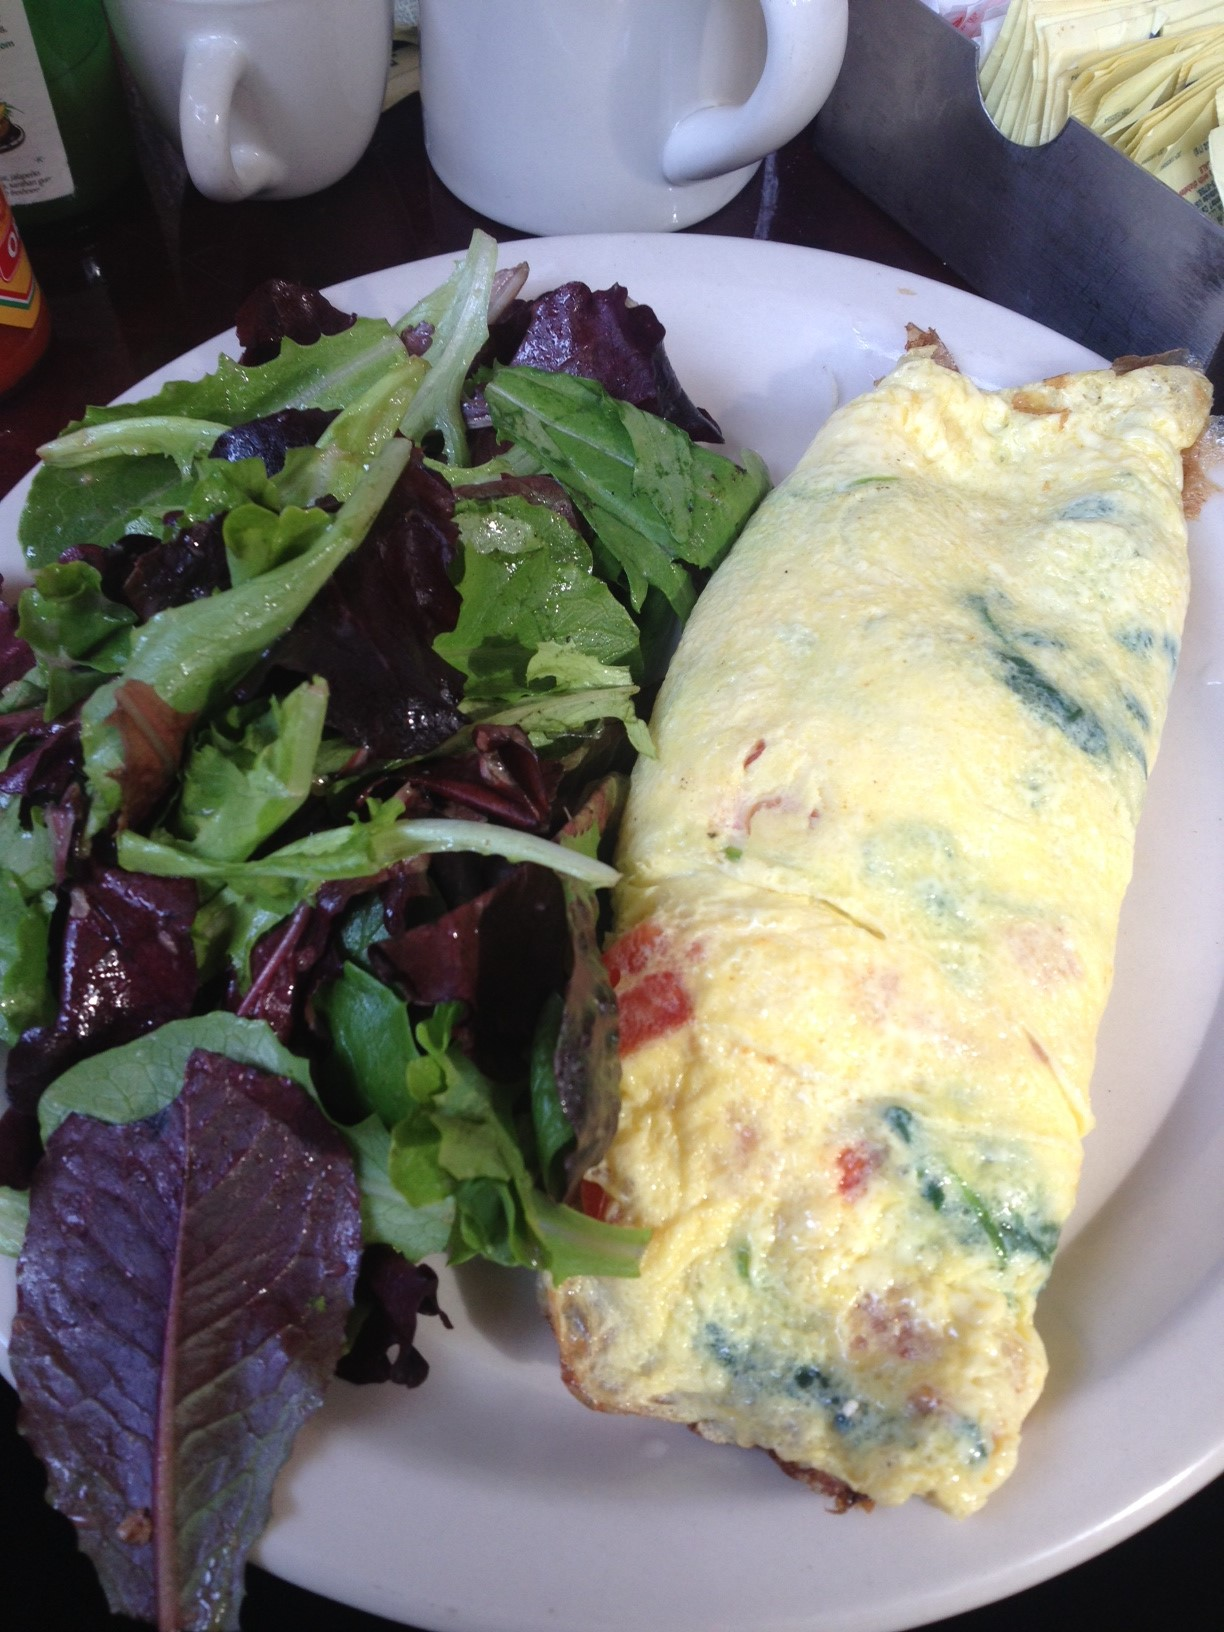 The Omelette - Spinach, Tomato, Sheep's Milk Cheese